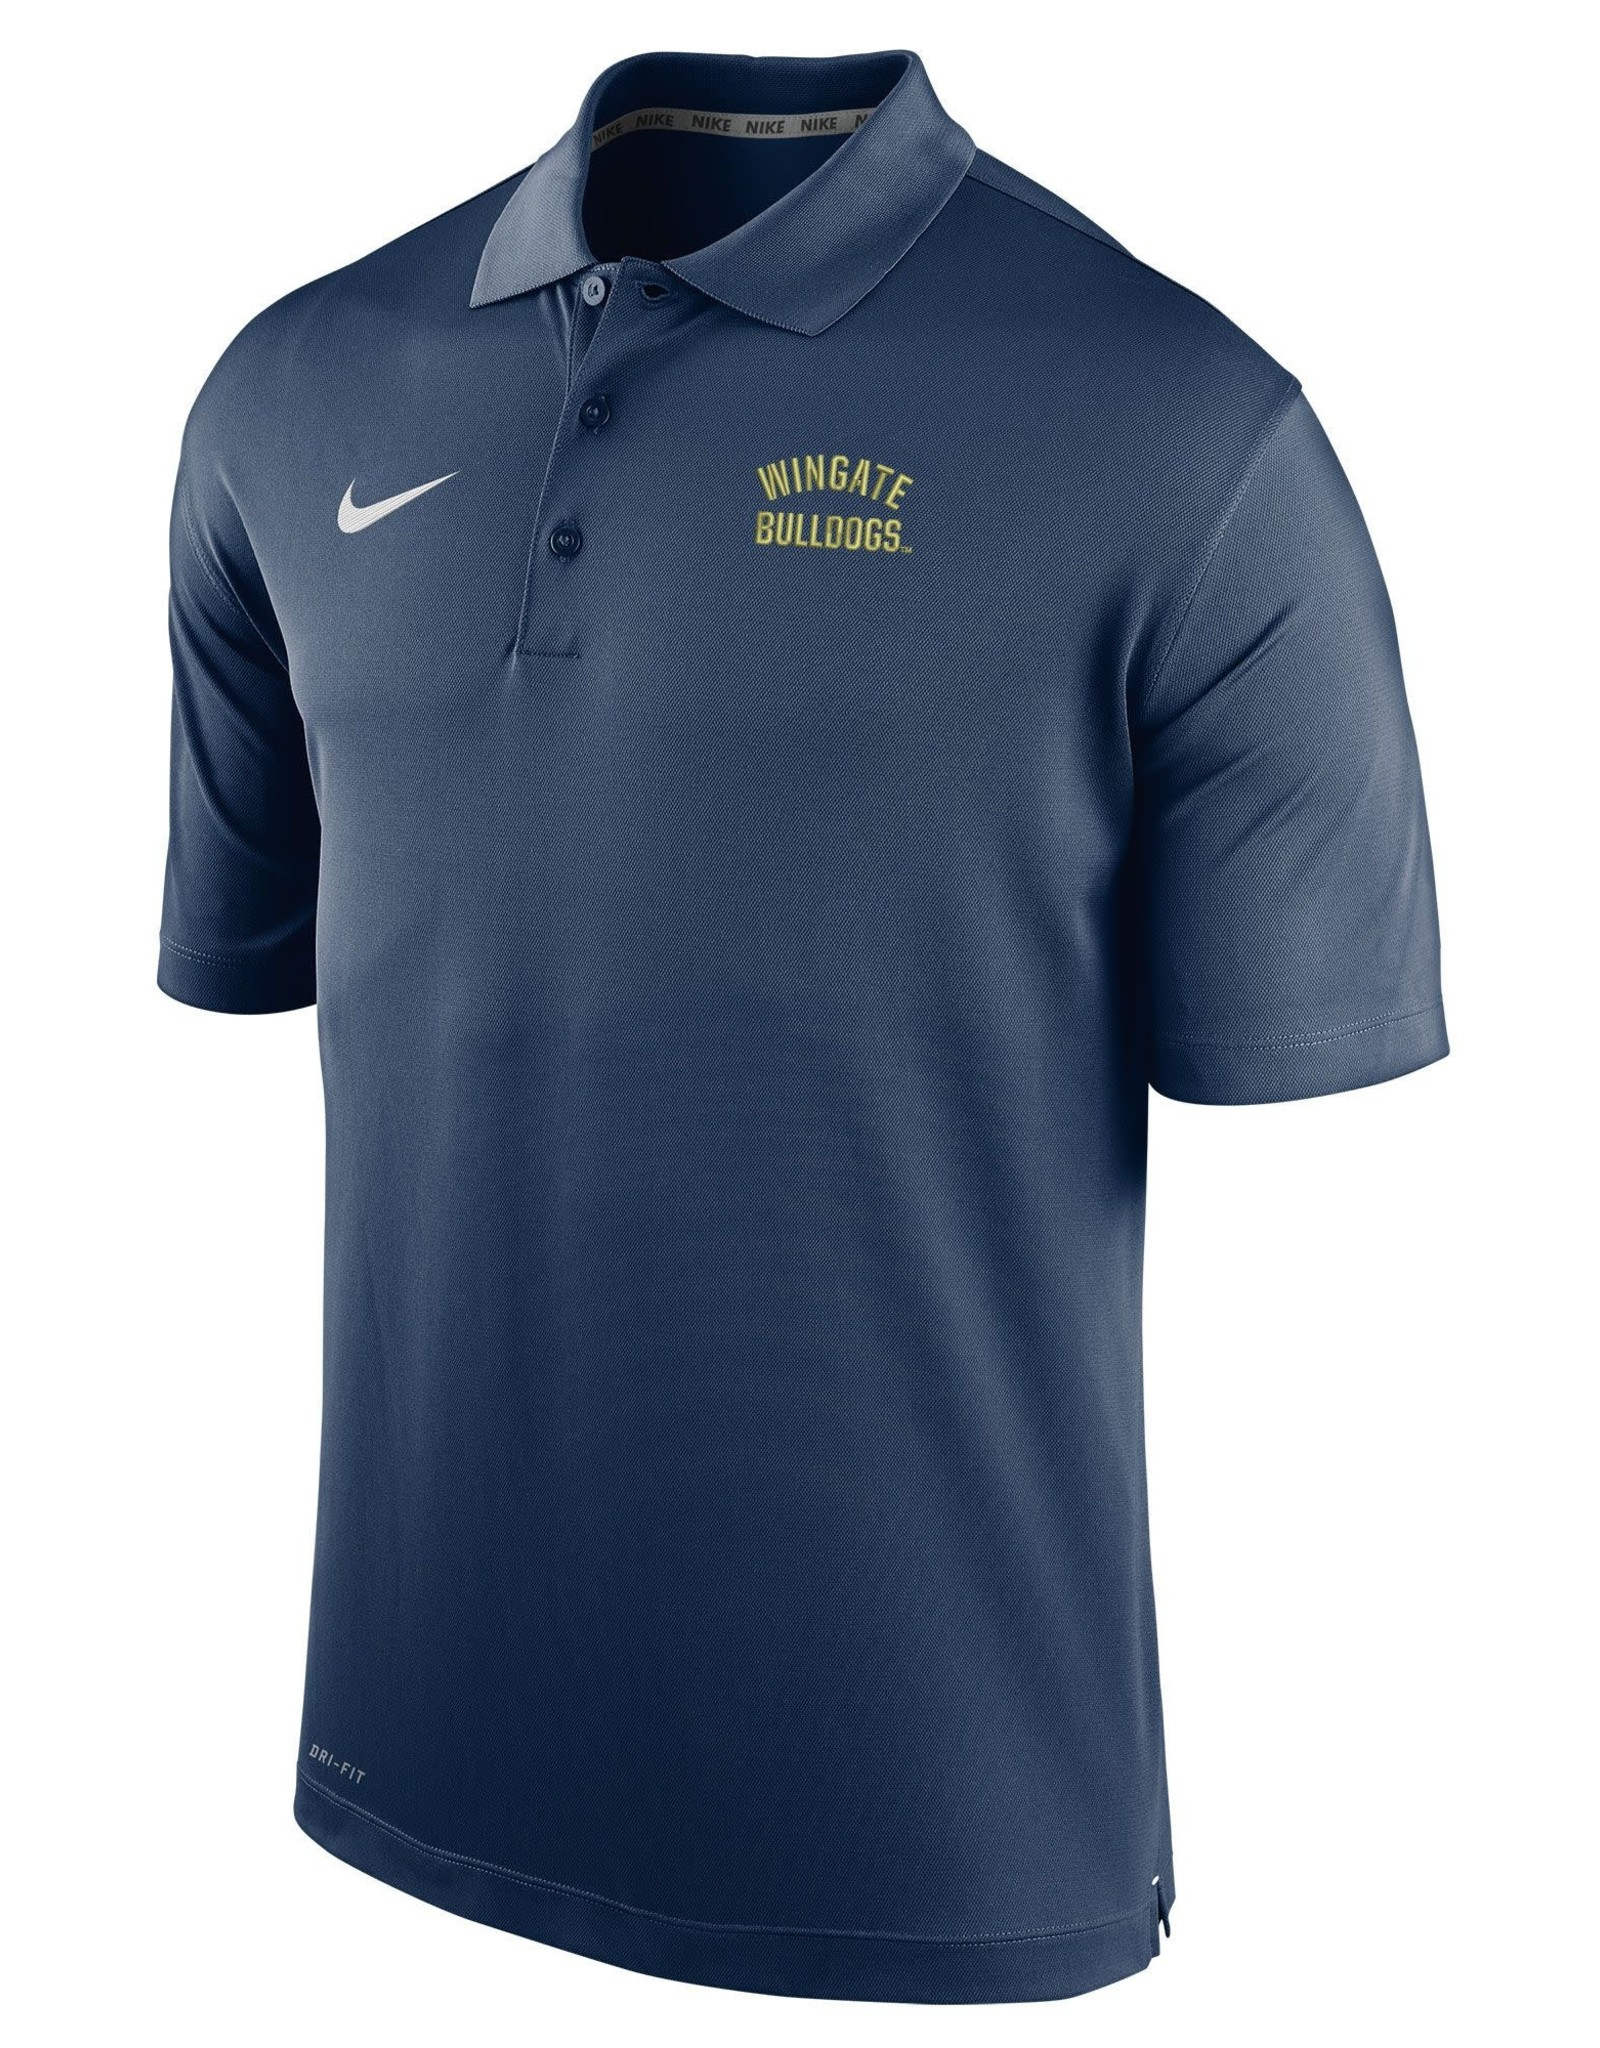 Nike Navy Wingate Bulldogs Embroidered Varsity Performance Polo